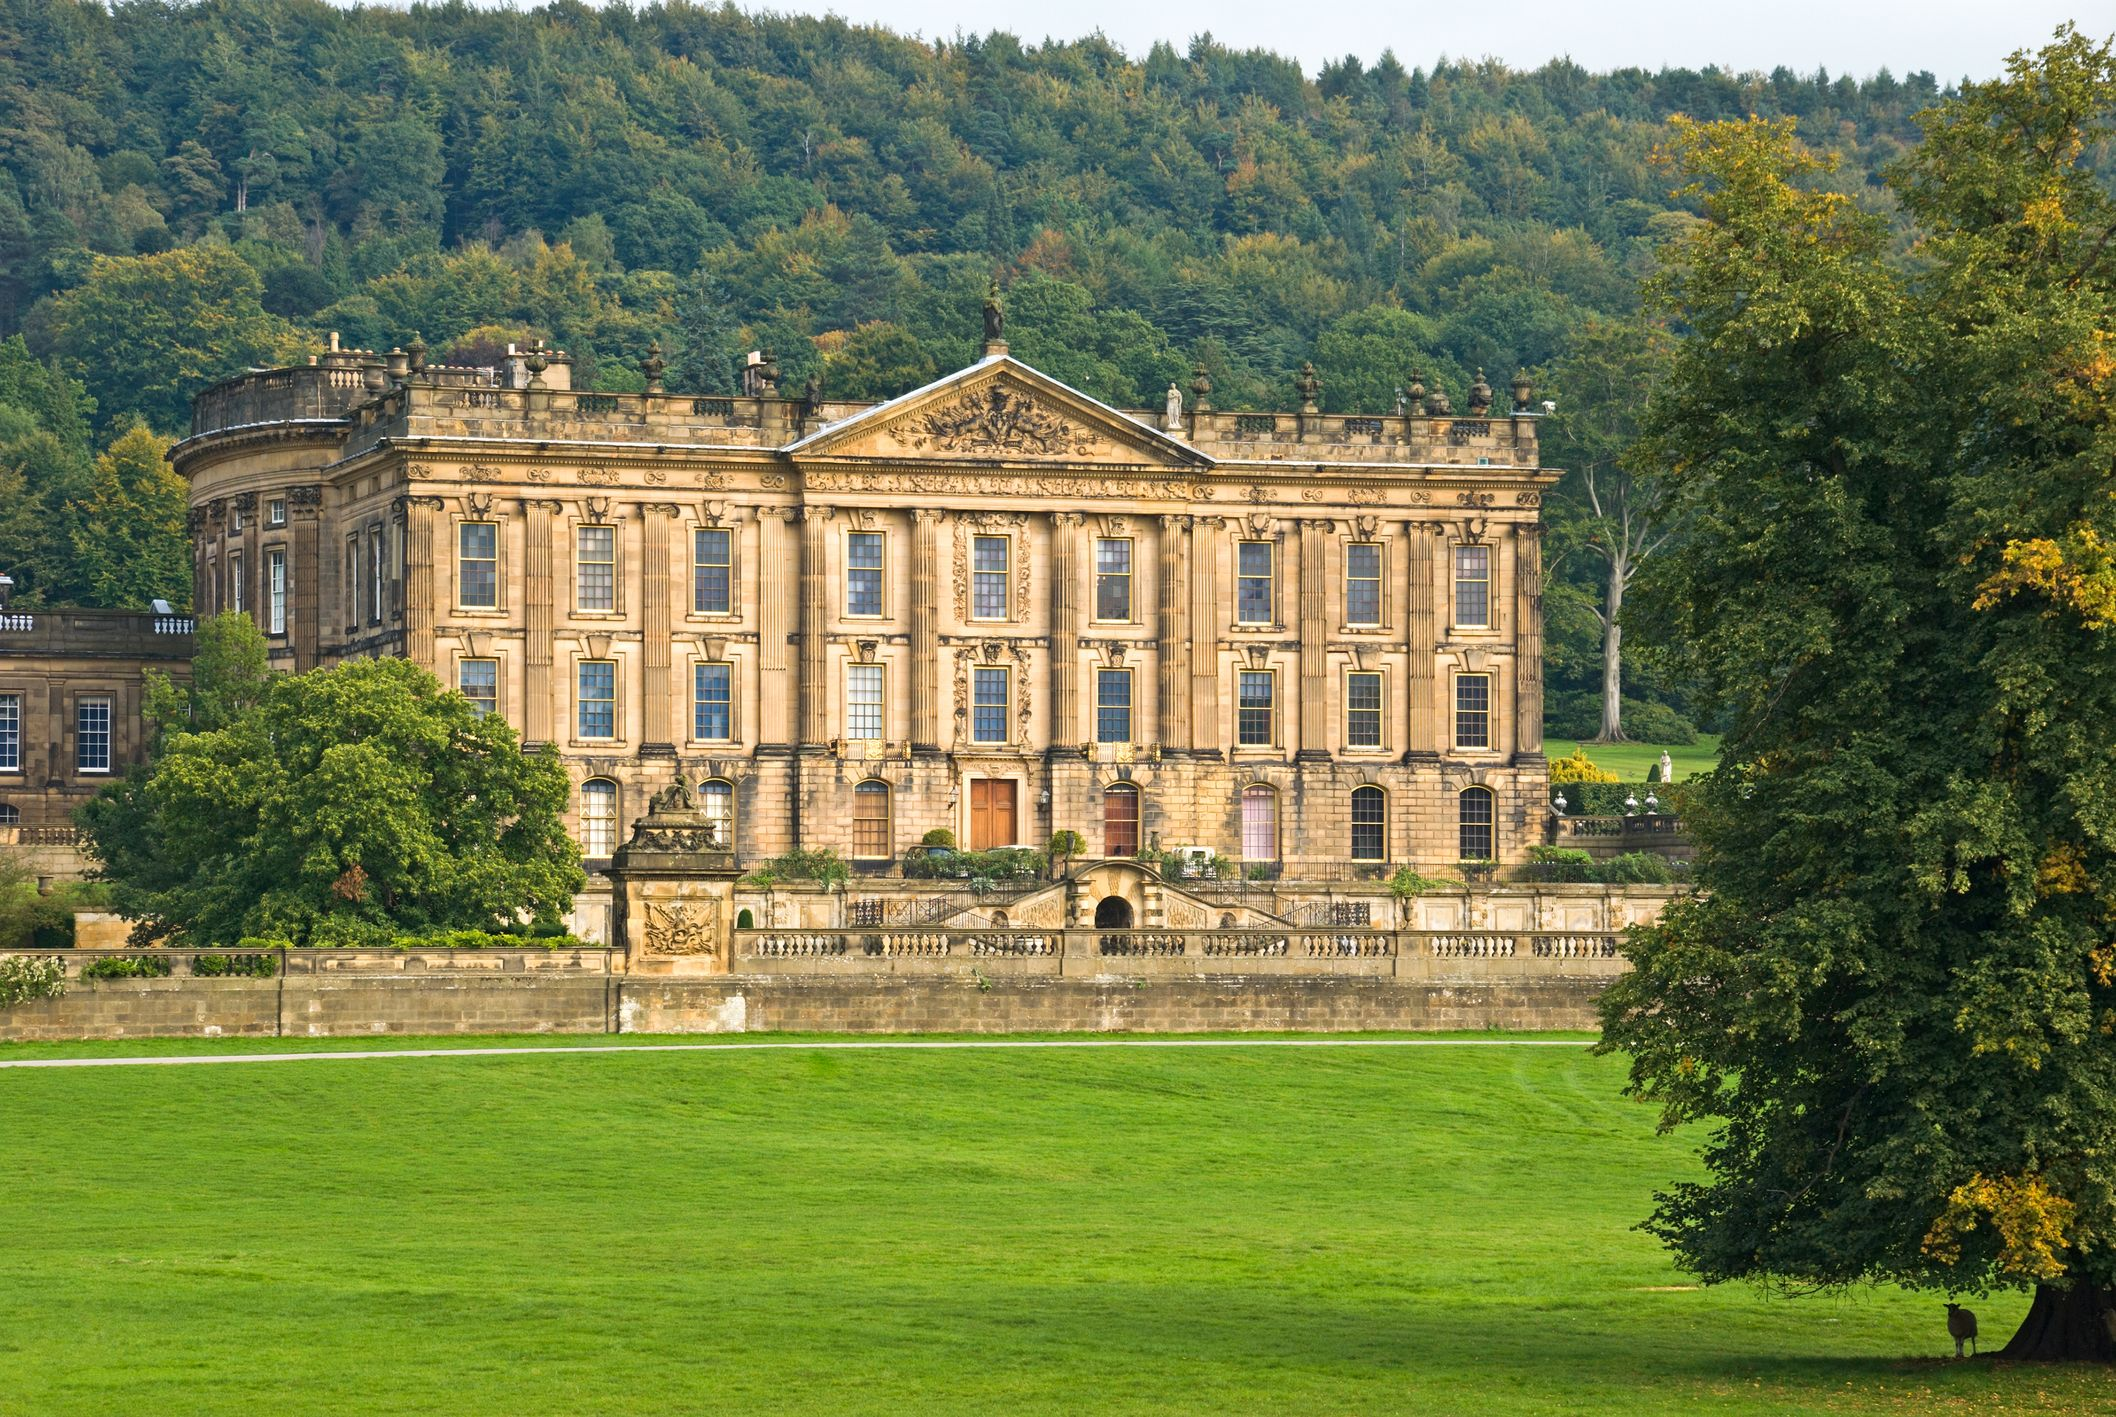 5ca17133baa05be712af96ba3b6c84d7 - Stately Homes And Gardens Near Me